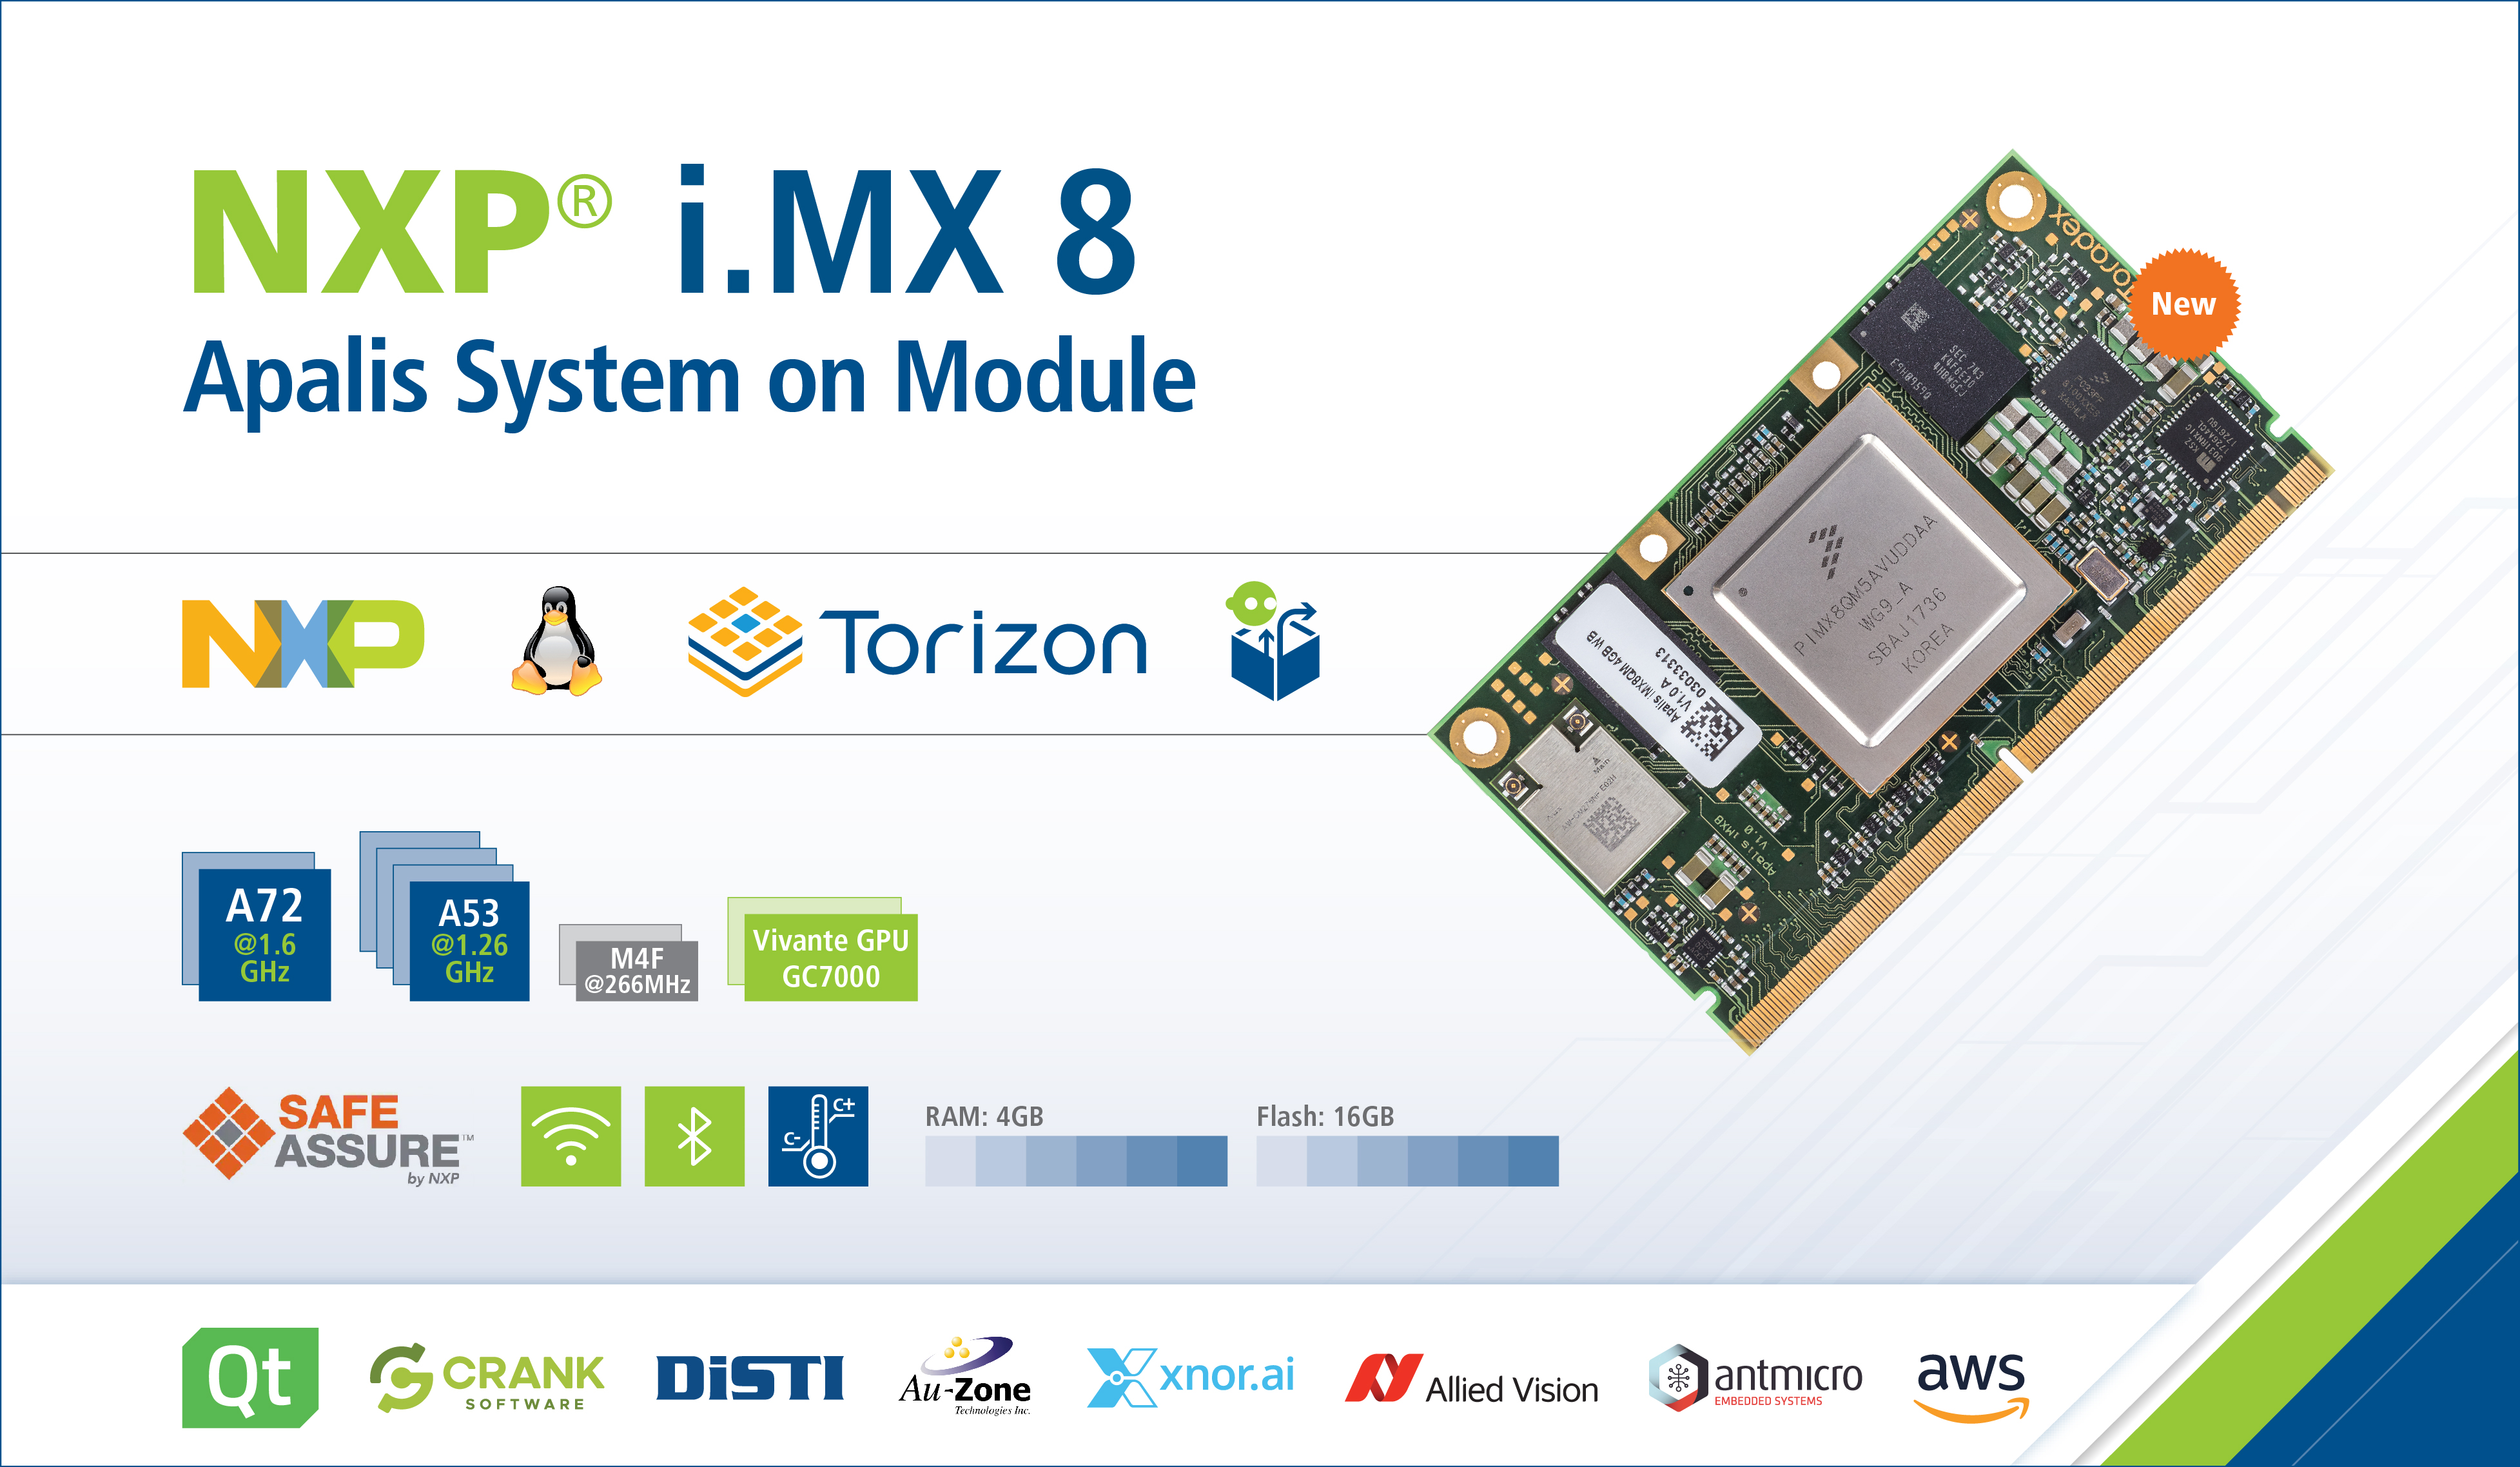 Apalis iMX8 System on Module